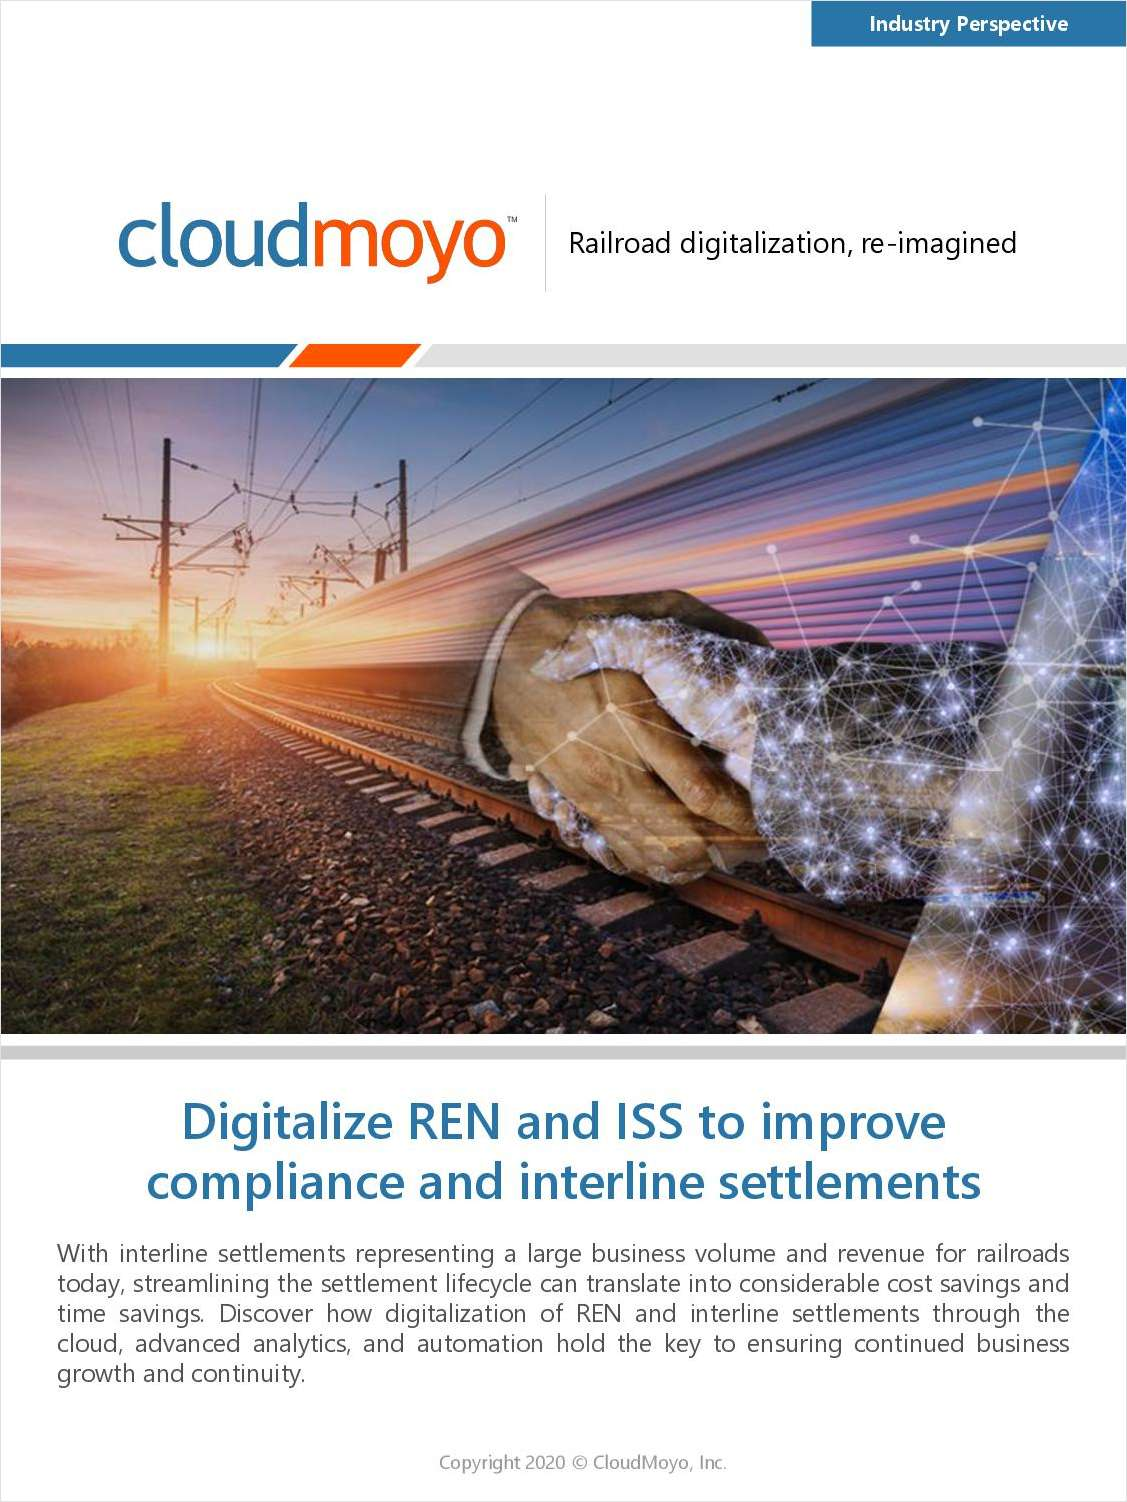 Digitalize REN and ISS to Improve Compliance and Interline Settlements